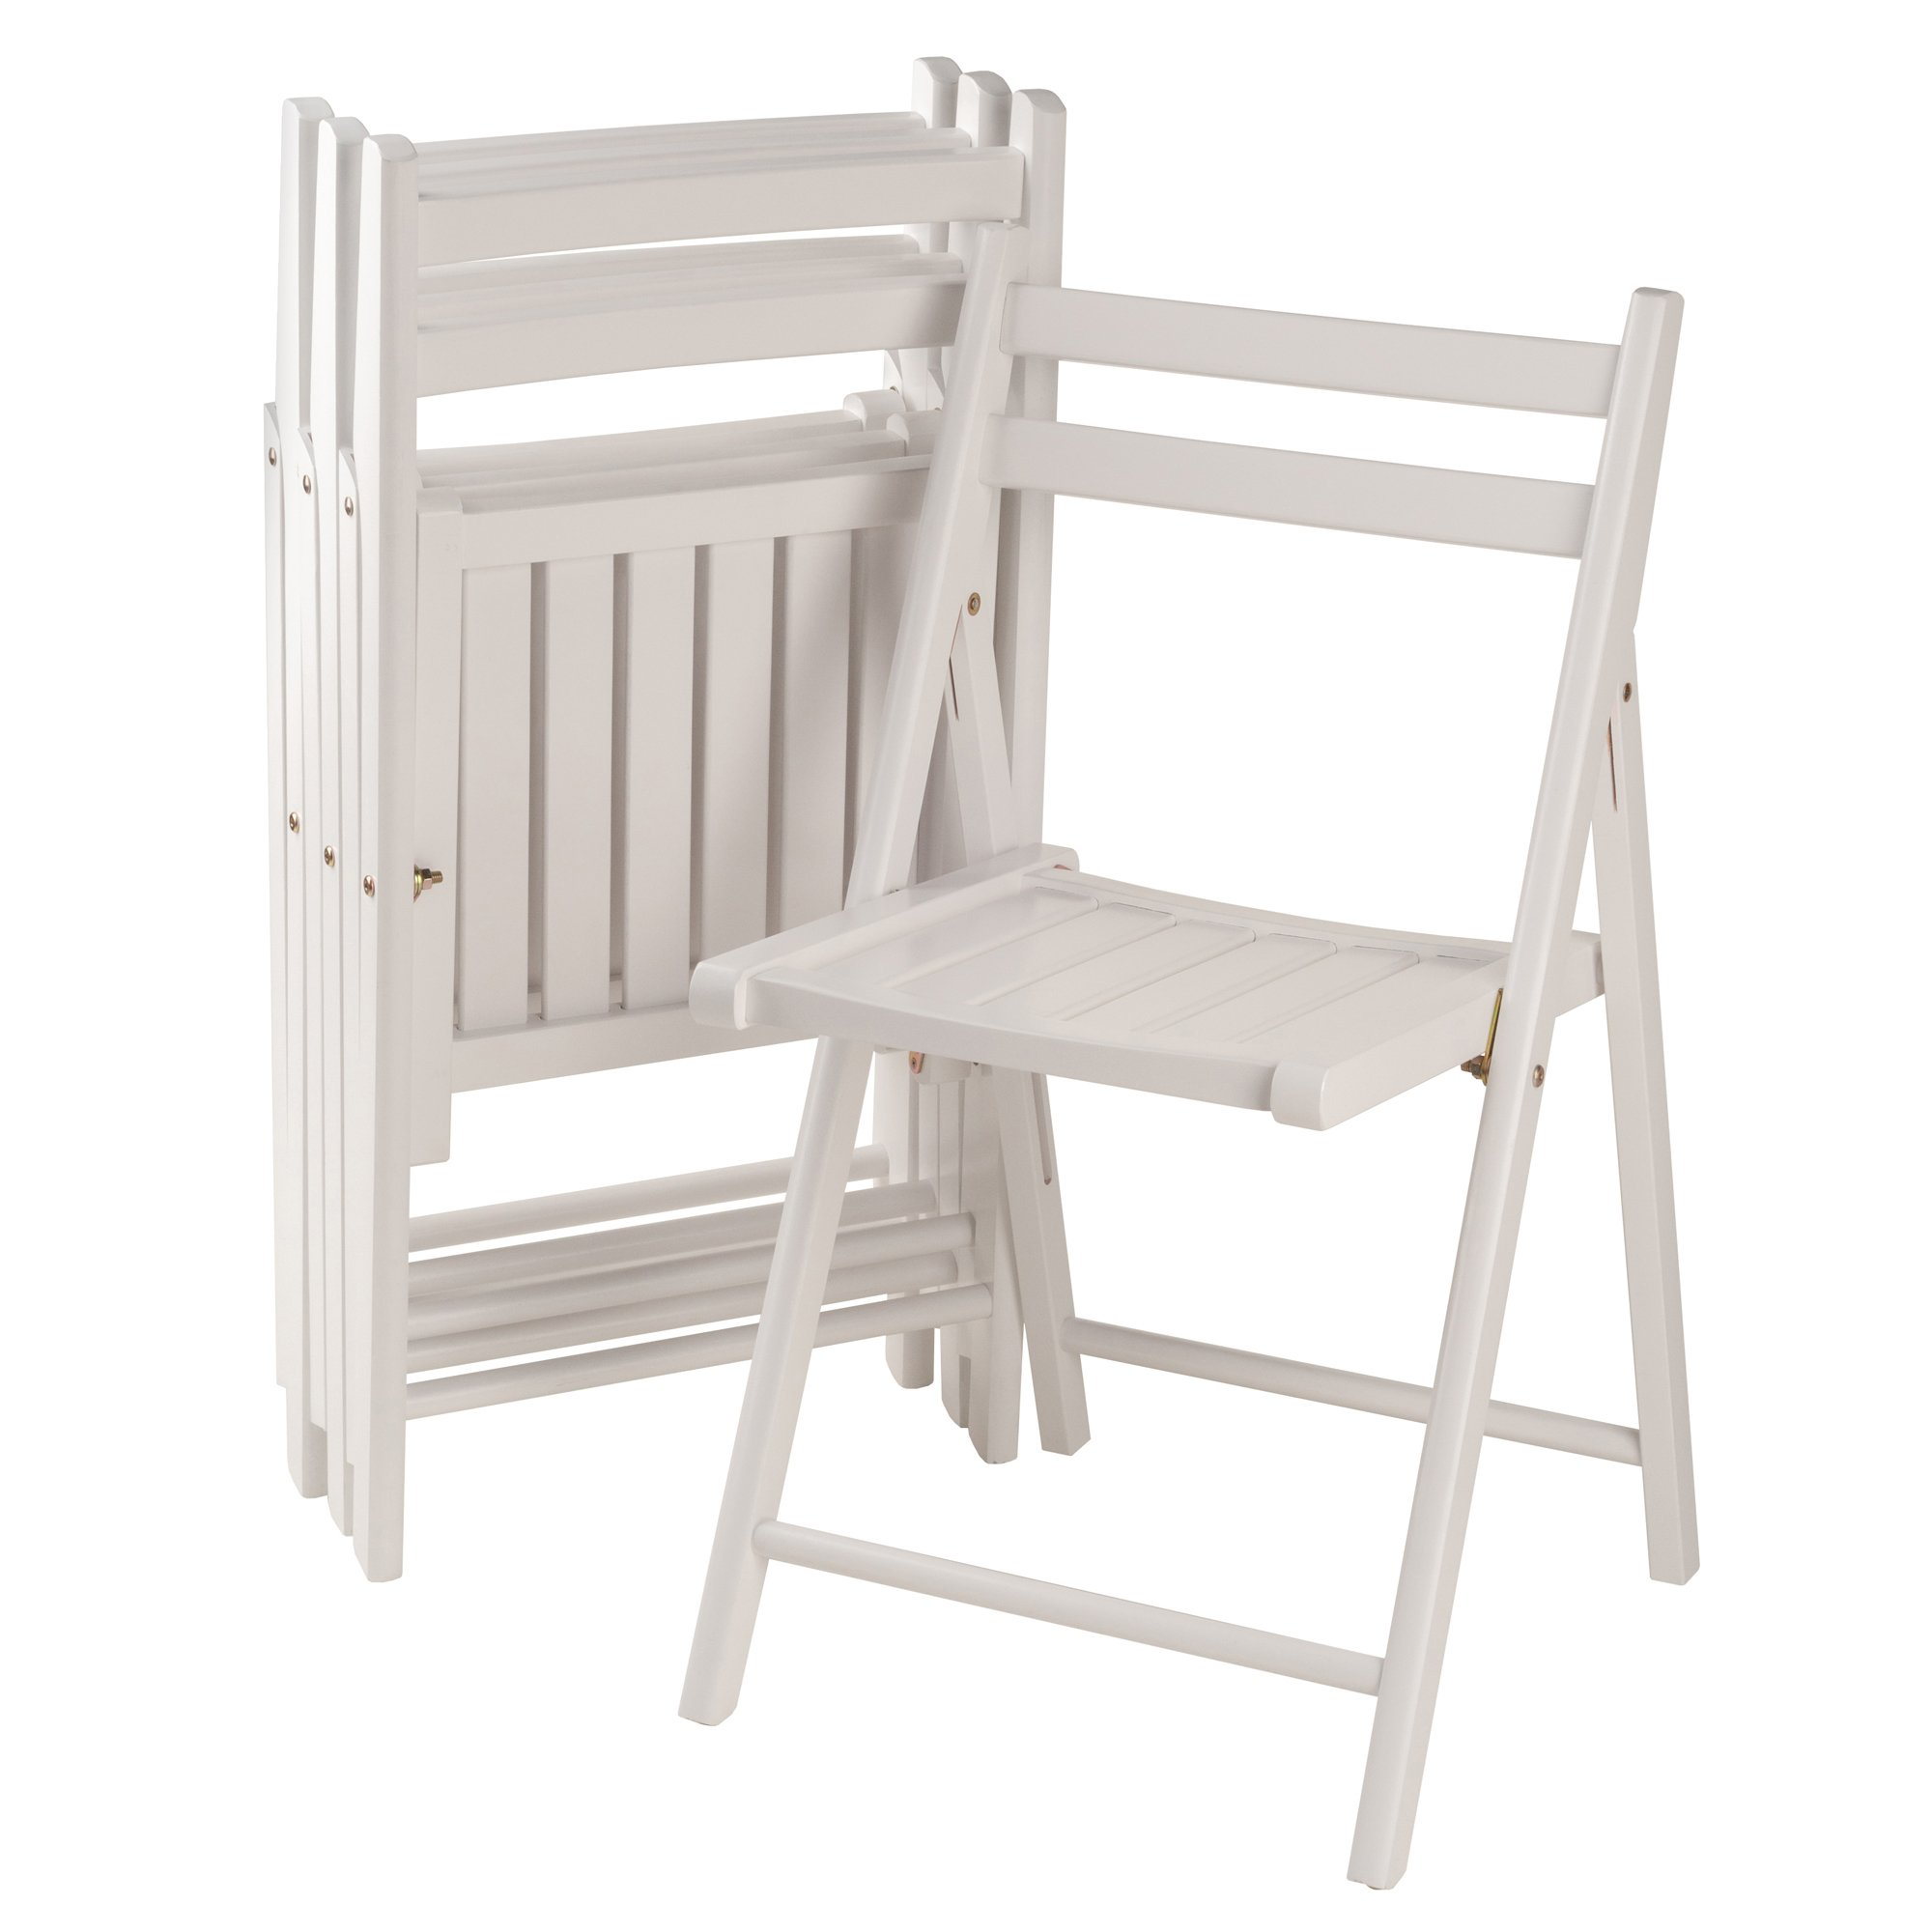 Winsome Wood 10415 Robin 4-PC Folding Set White Chair